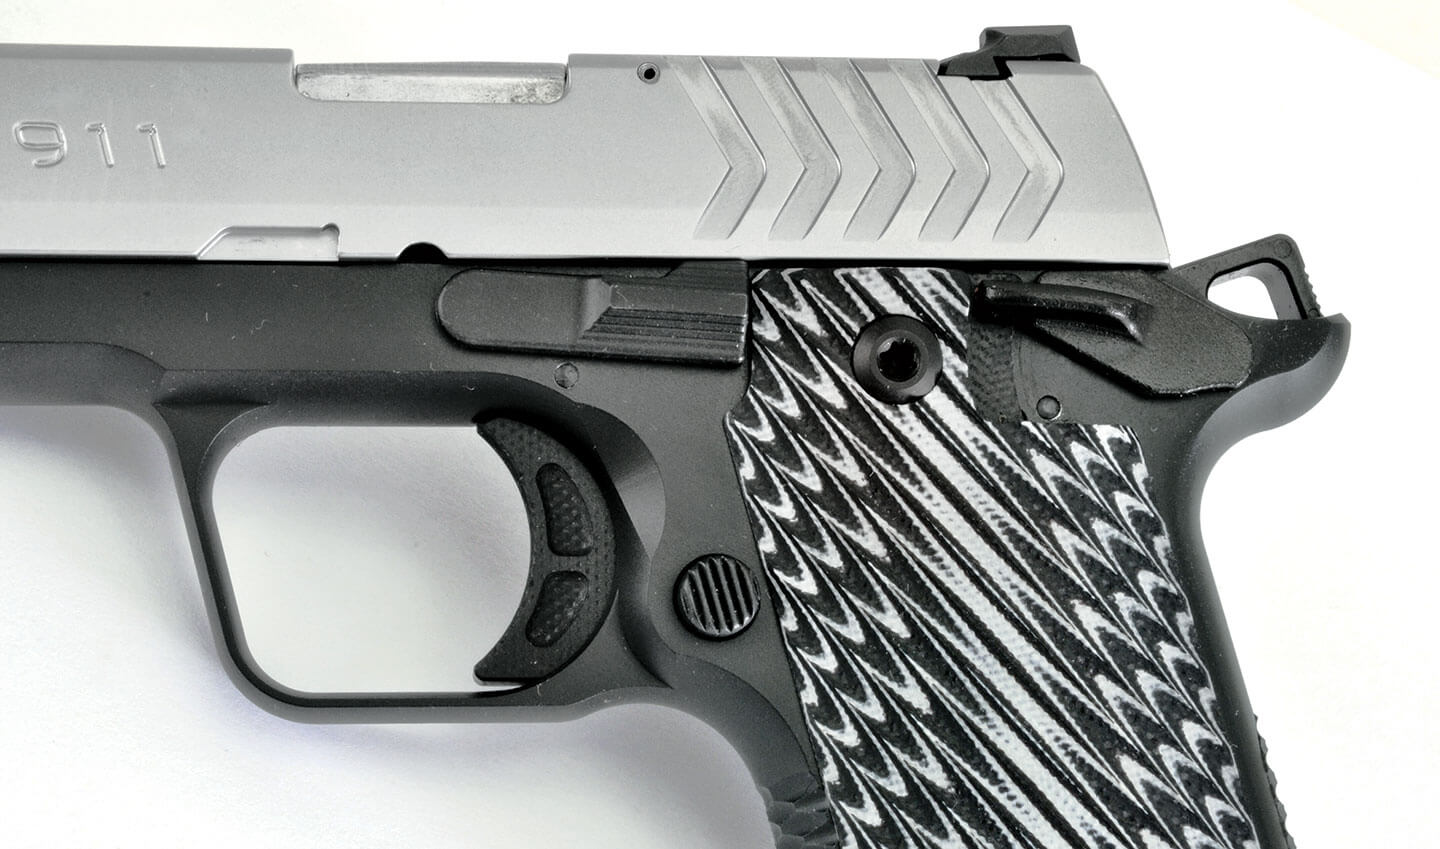 Springfield 911 with ambidextrous safety